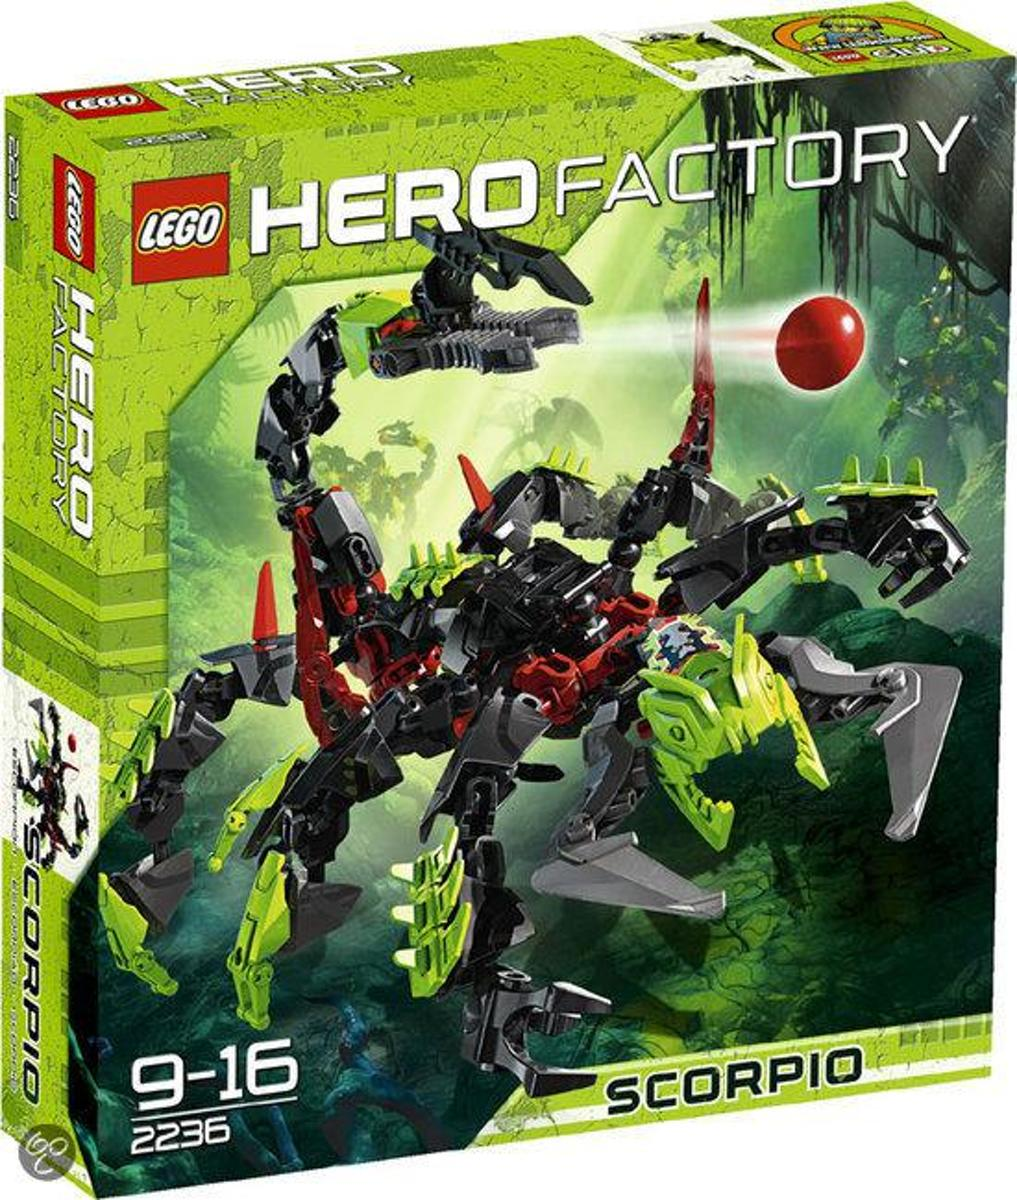 LEGO Hero Factory Scorpio - 2236